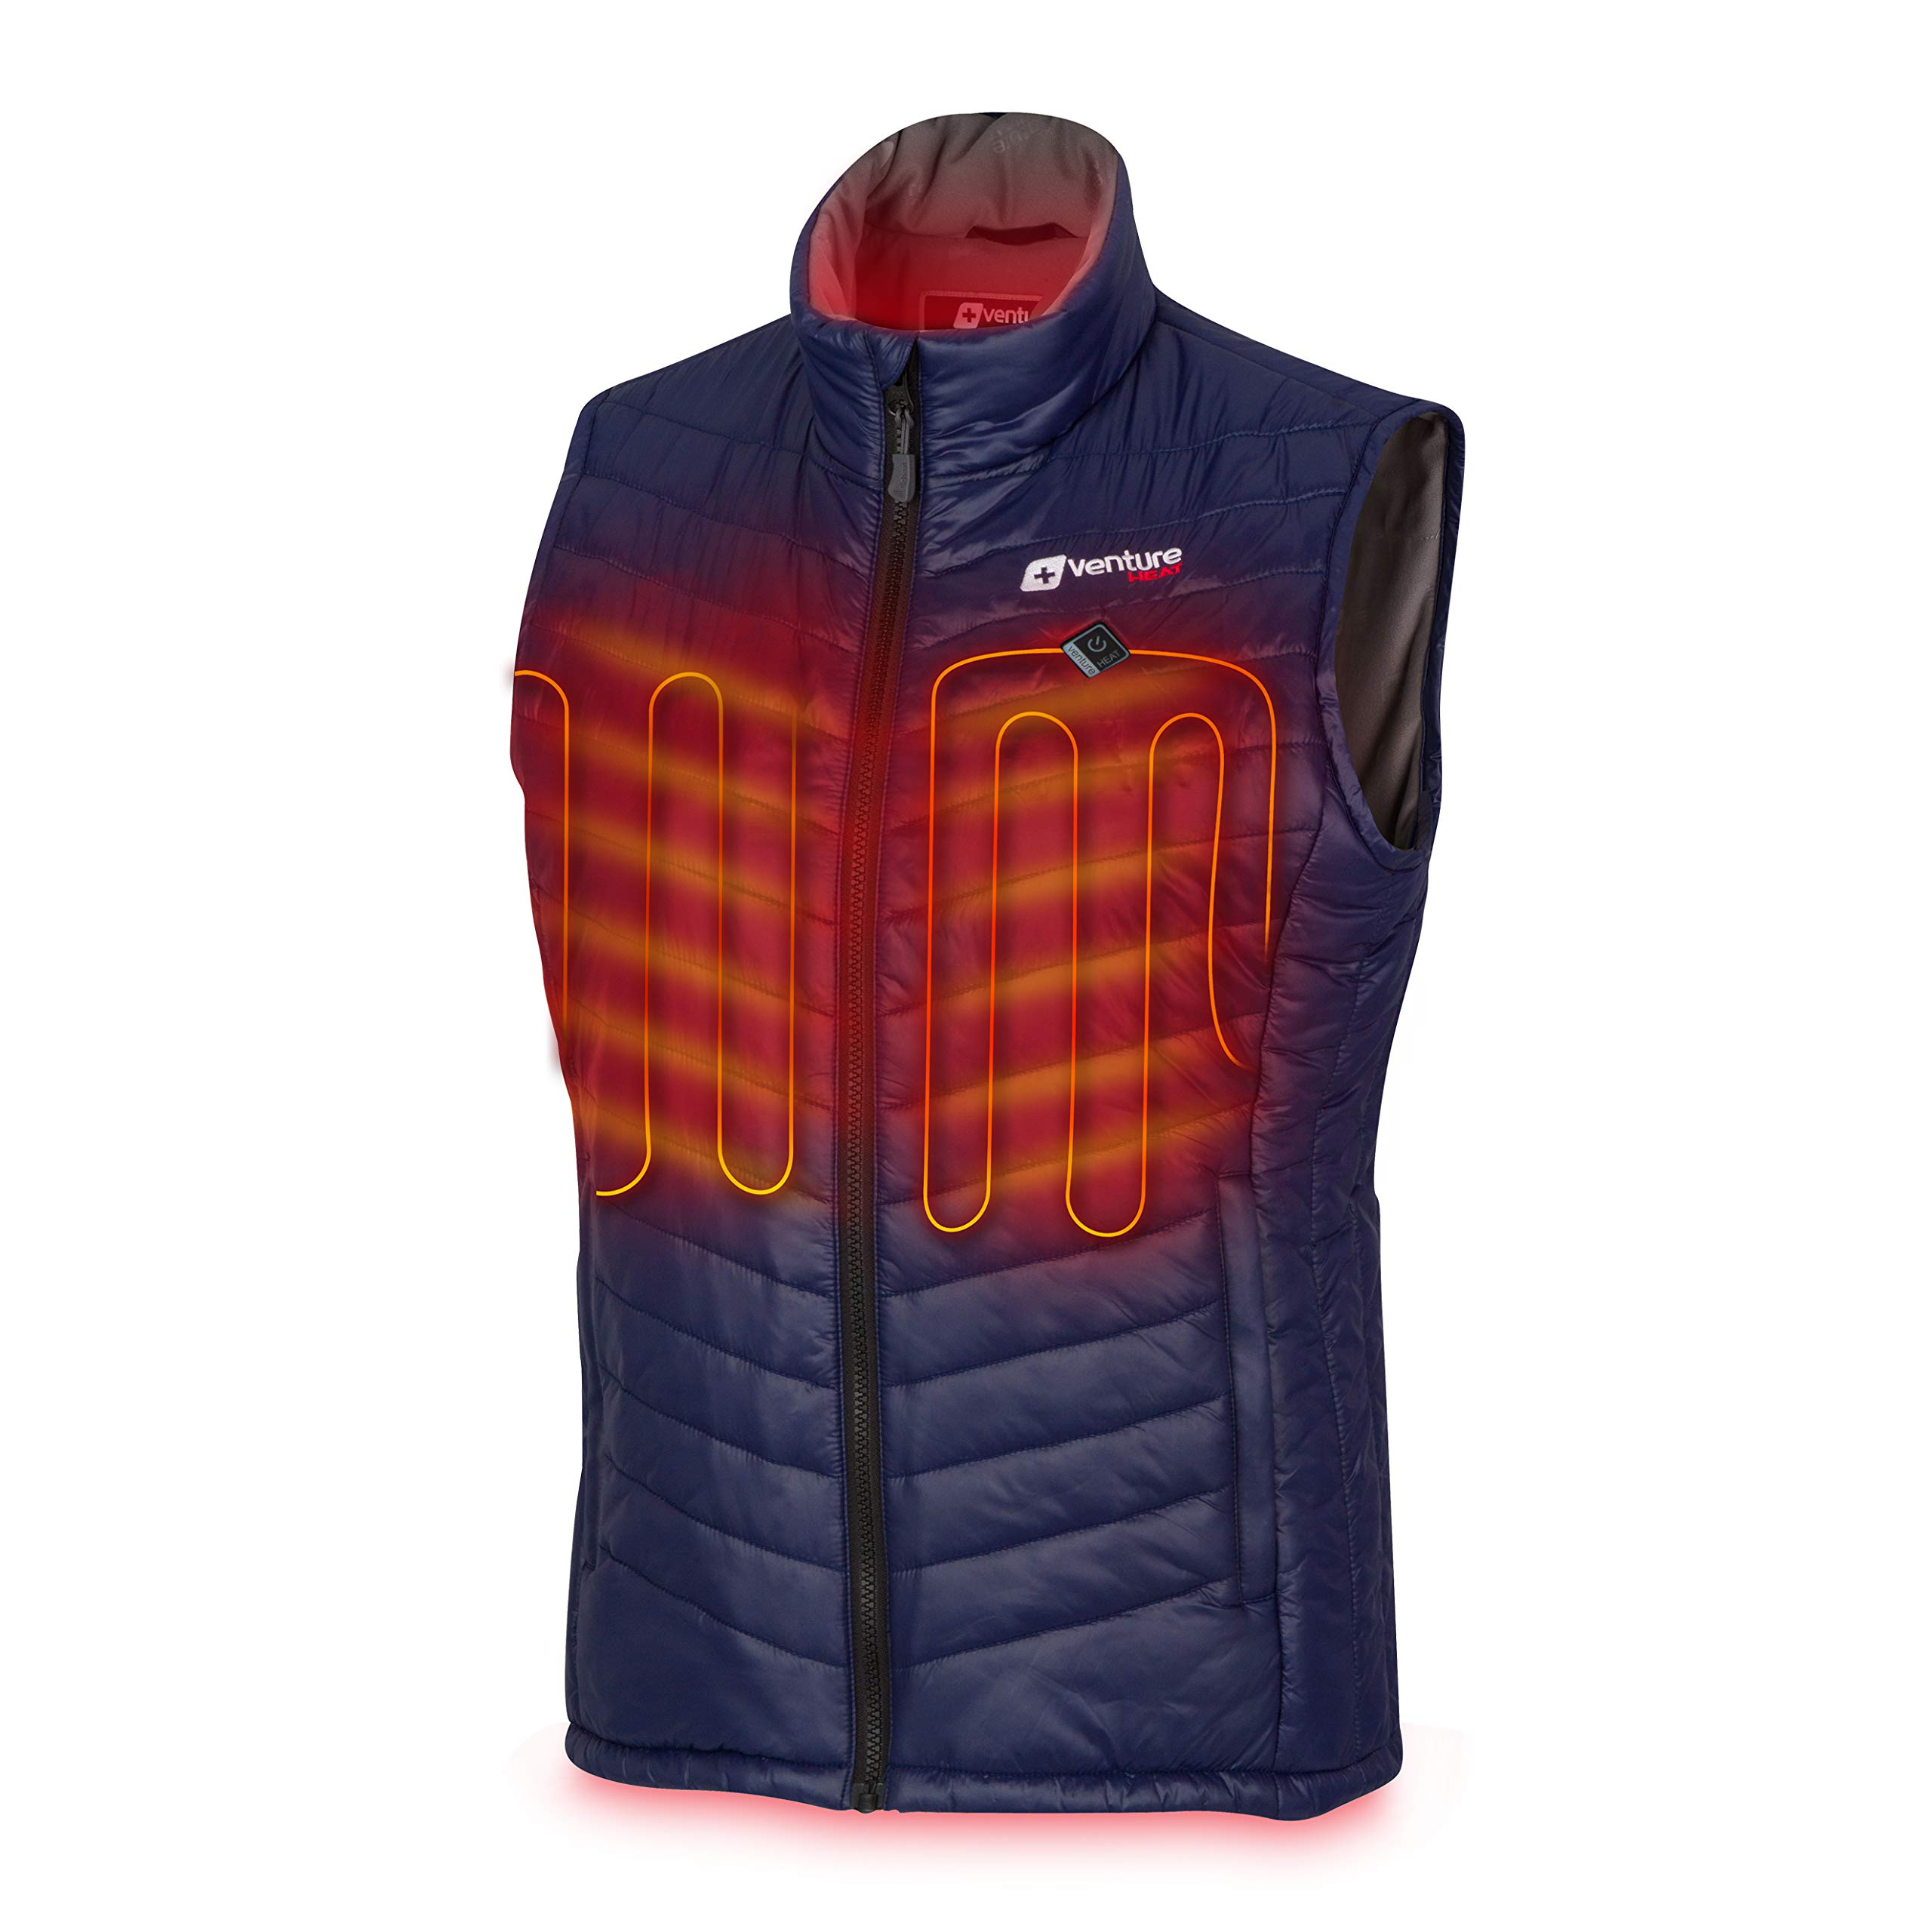 Venture Heat Women's Heated Vest with Battery Pack - Insulated Electric Jacket, Puffer Vest, Roam 2.0 (M, Navy) by Venture Heat